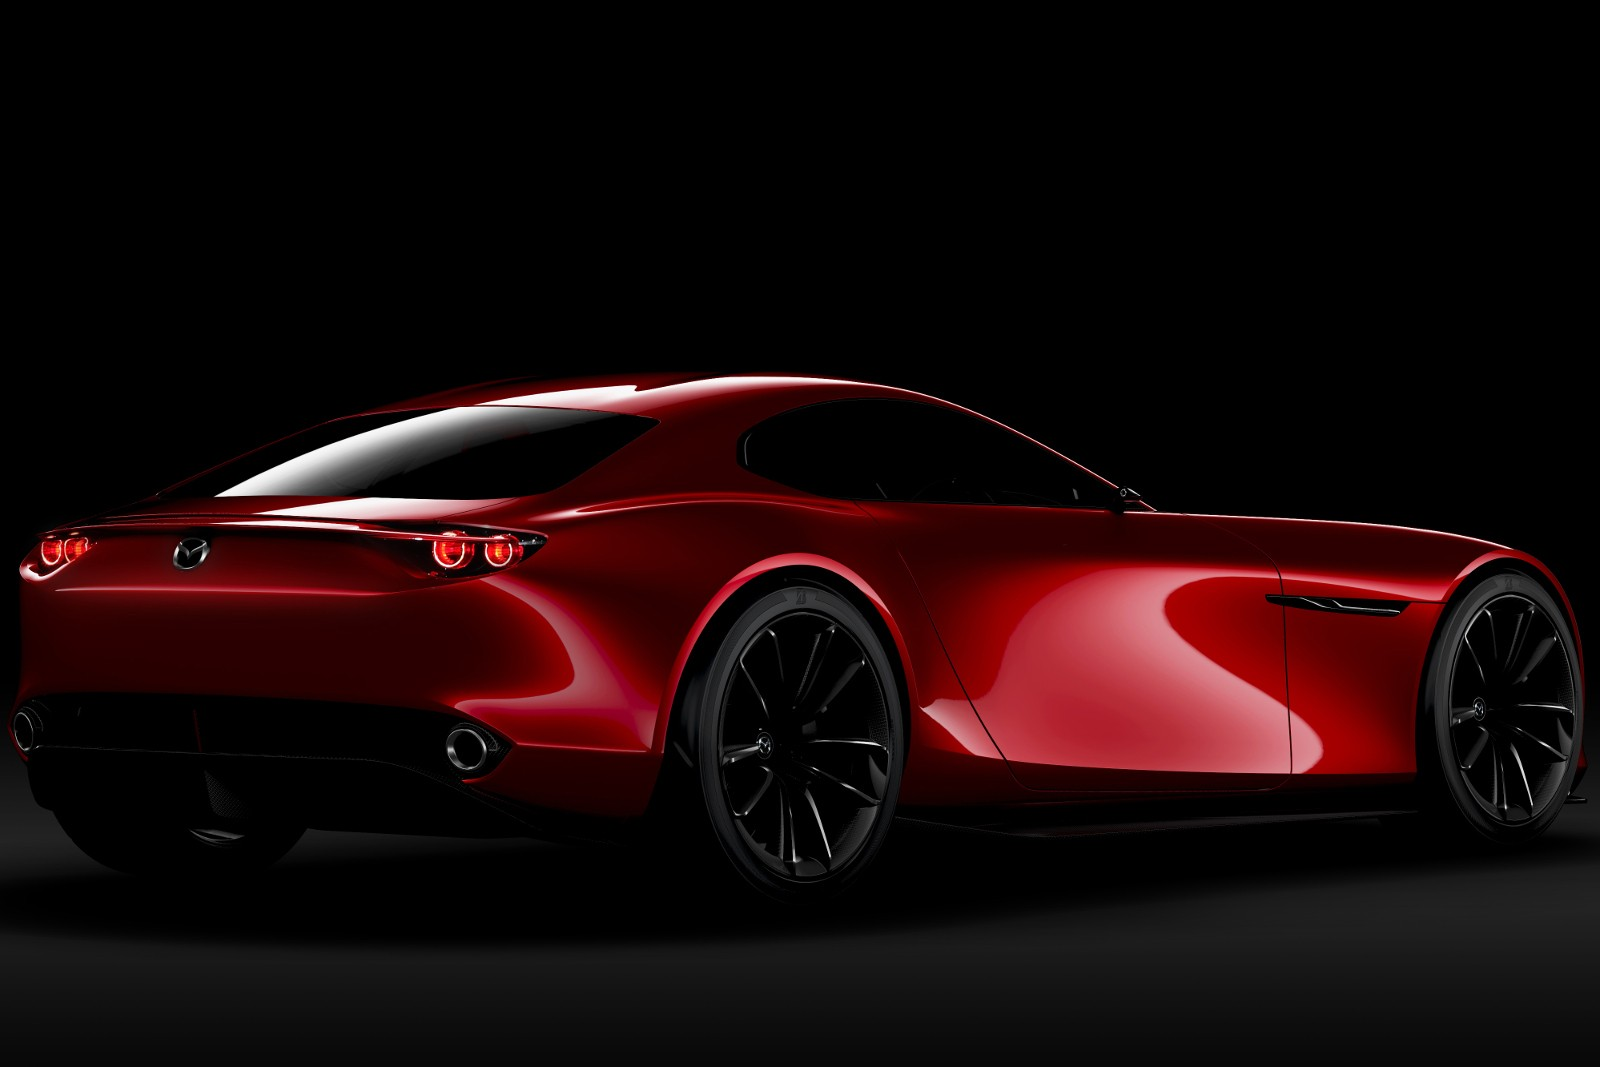 New Mazda Rotary Sports Car Concept Coming To 2017 Tokyo ...